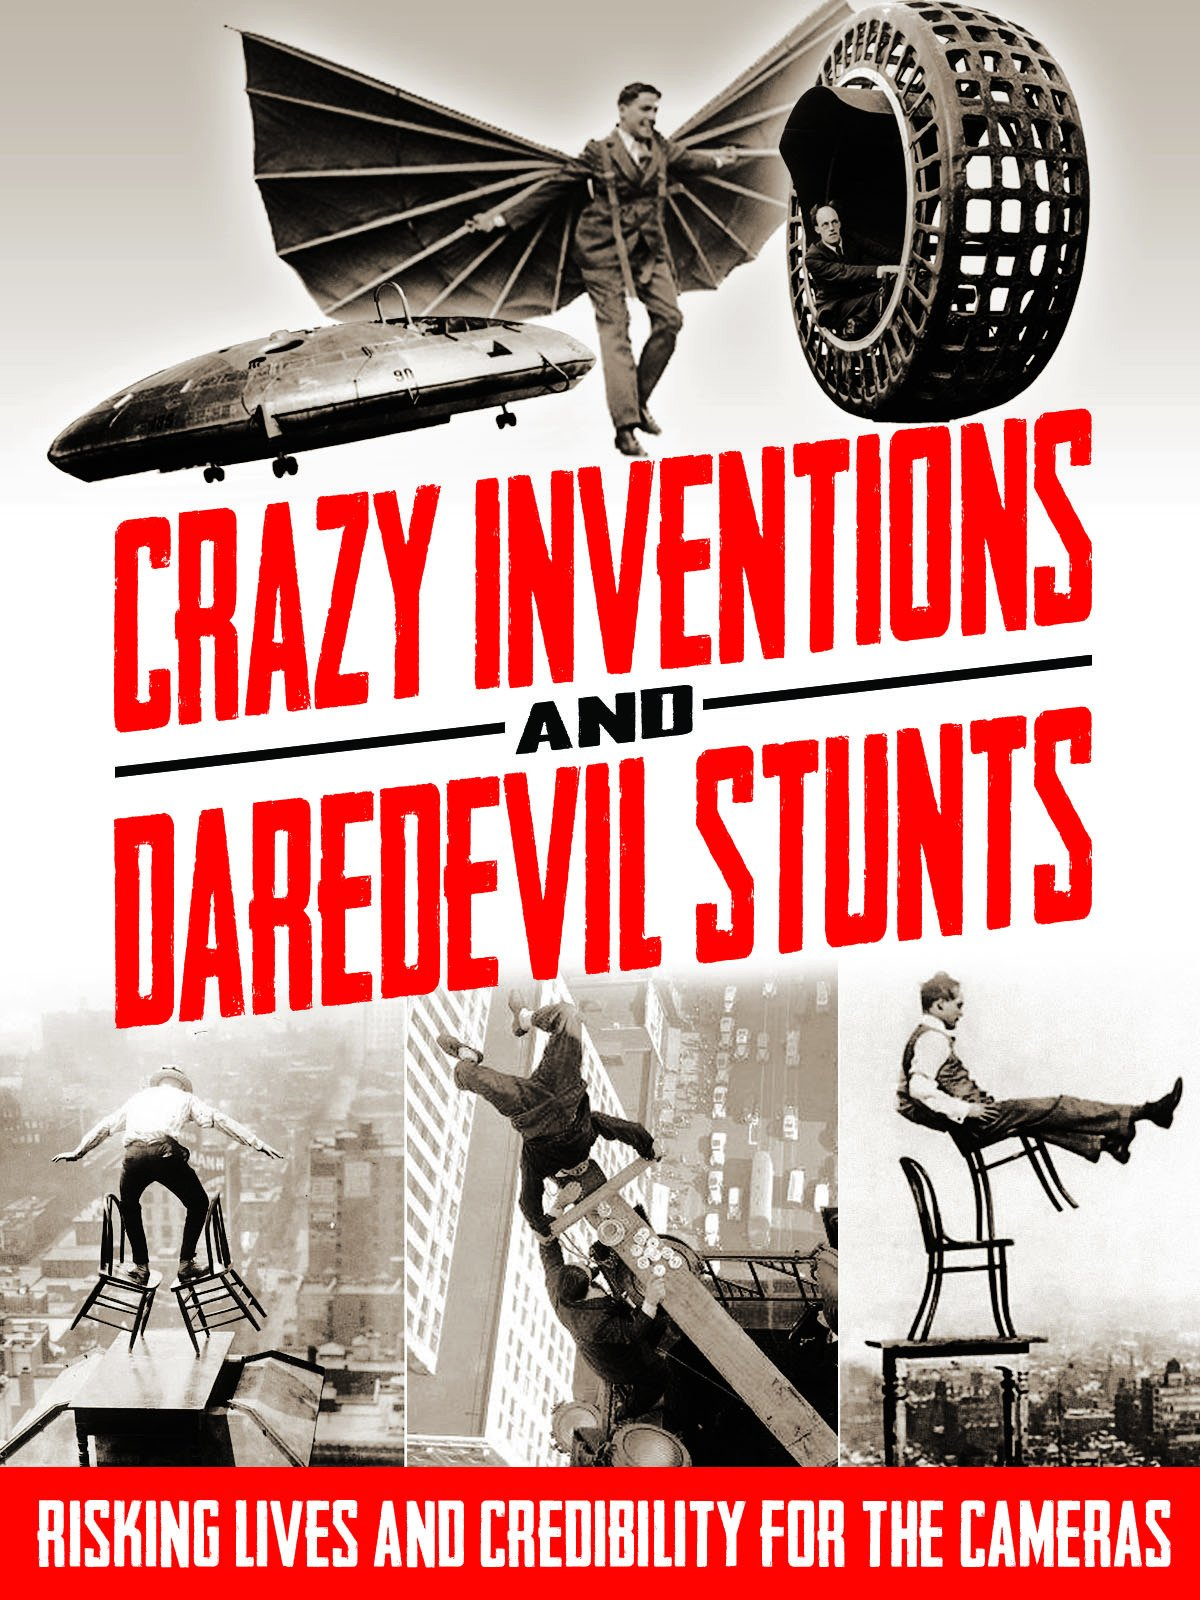 Crazy Inventions & Daredevil Stunts Risking Lives and Credibility for the Cameras on Amazon Prime Video UK